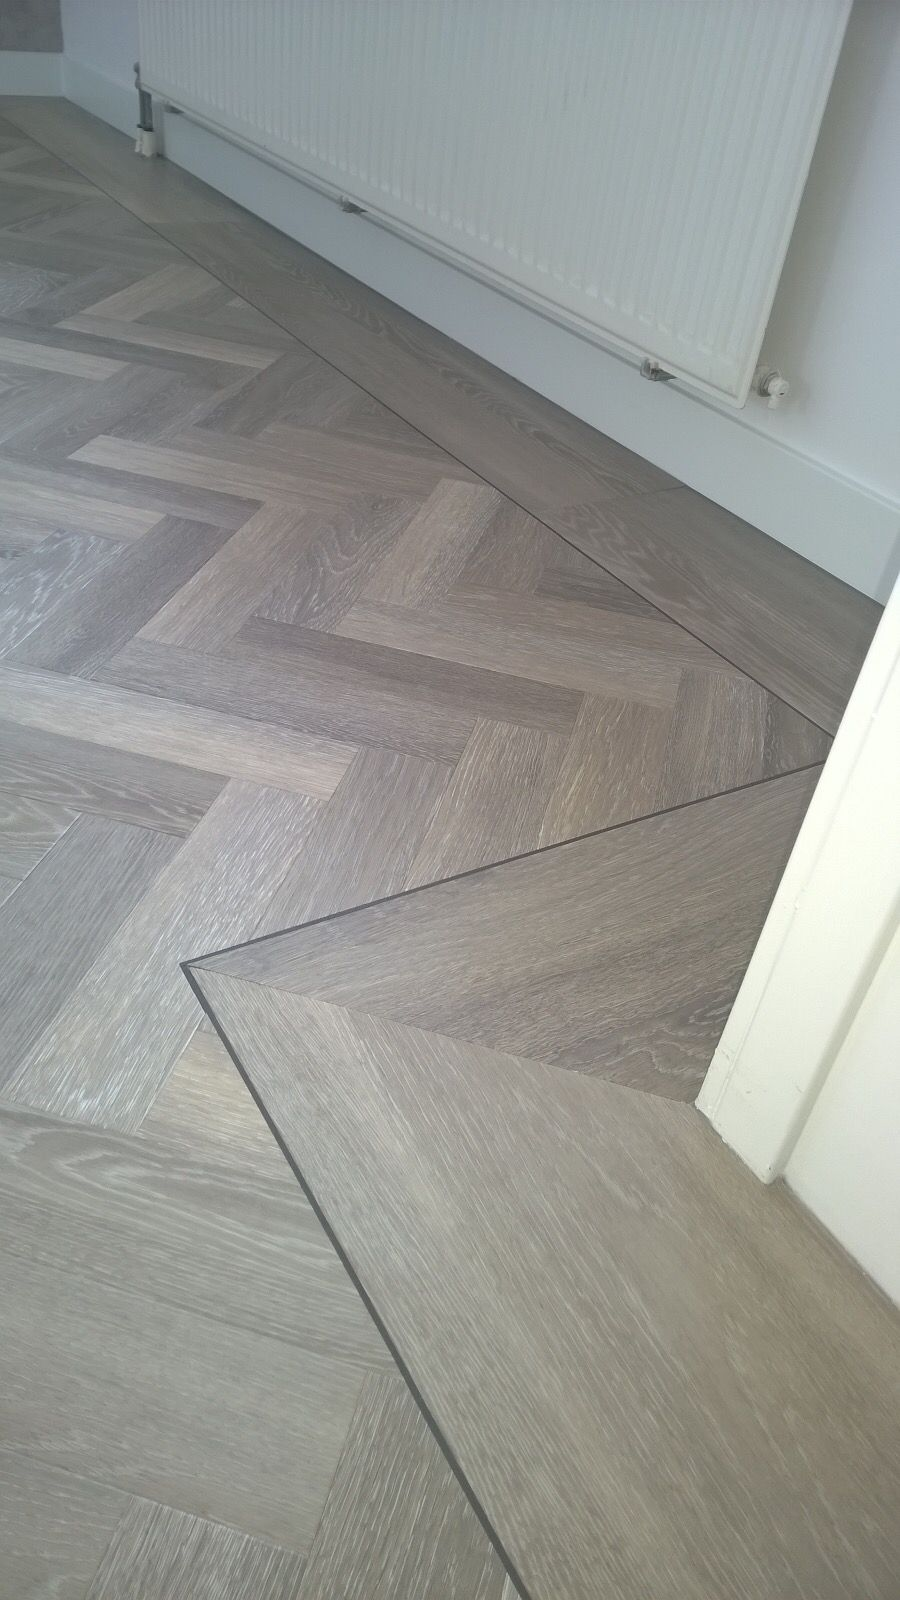 Pin by ermioni cela on home ideas pinterest dan flooring ideas floor design tile design porch flooring herringbone floors flooring ideas wall tiles house interiors ceiling treatments screened porches dailygadgetfo Images